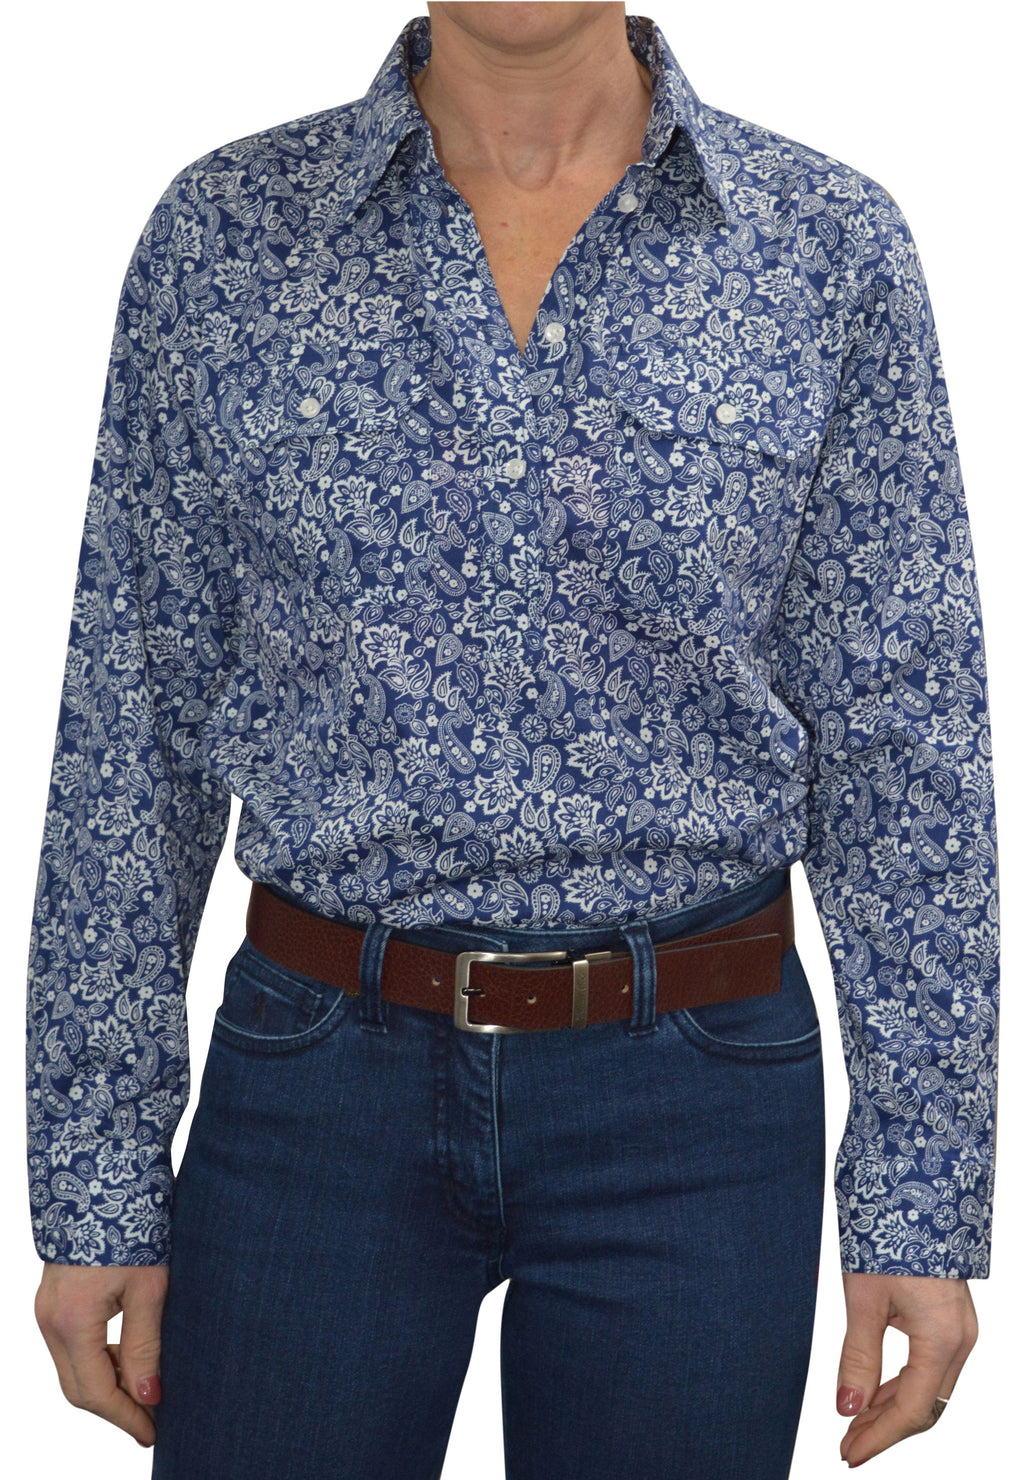 Womens Half Placket Blue 2 pckt Print L/S shirt